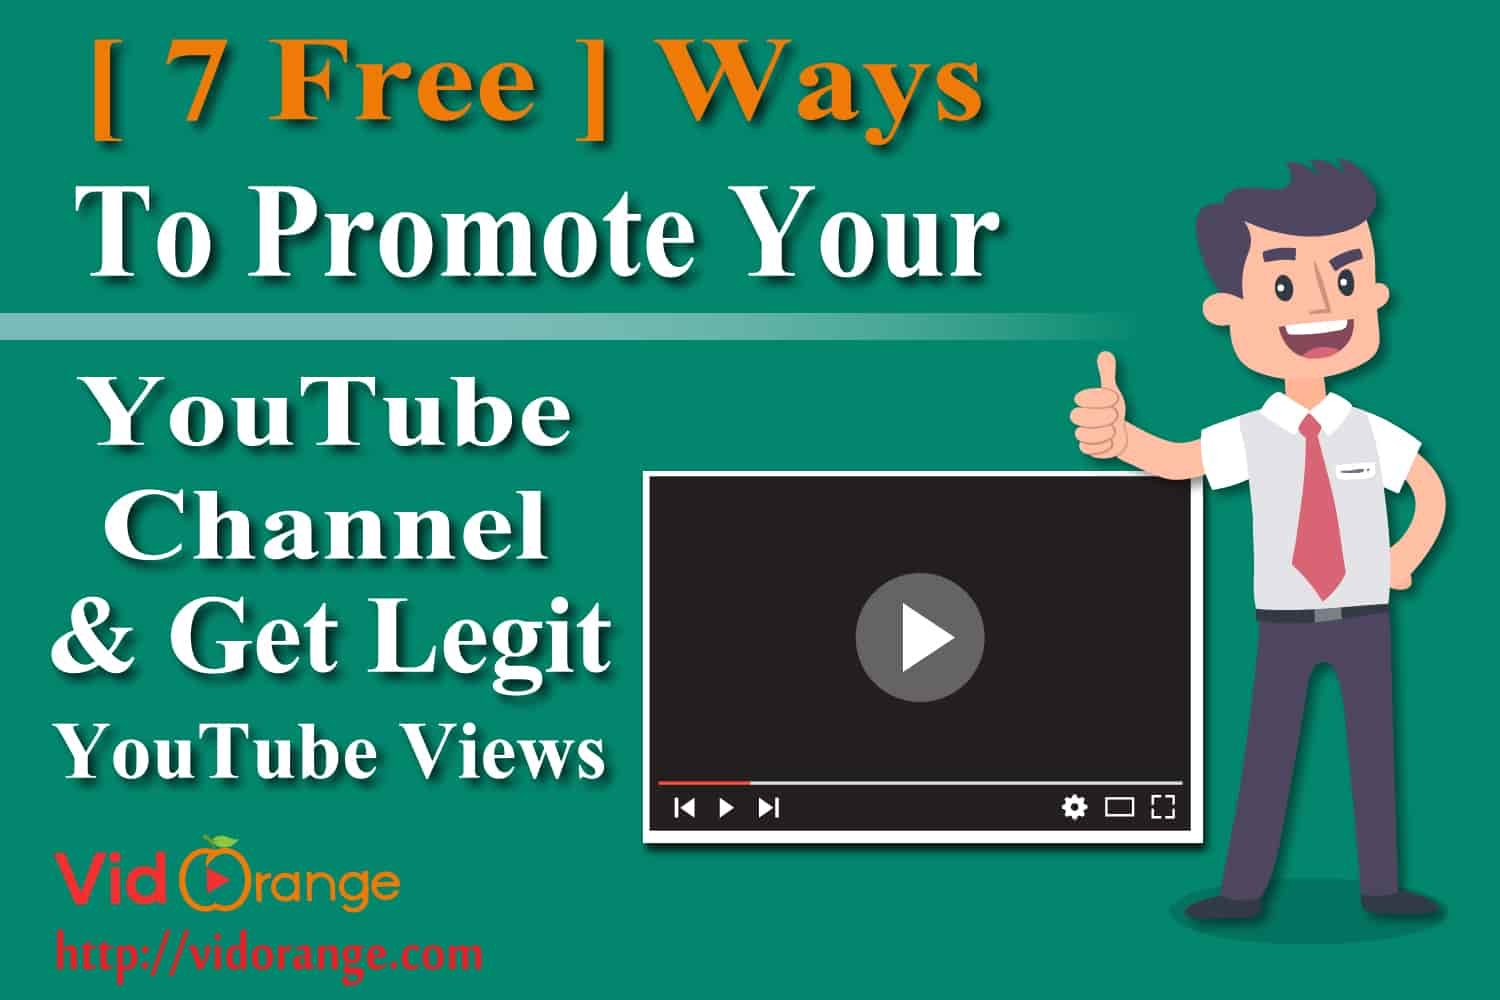 [ 7 Free ] Ways to Promote Your YouTube Channel & Get Legit YouTube Views